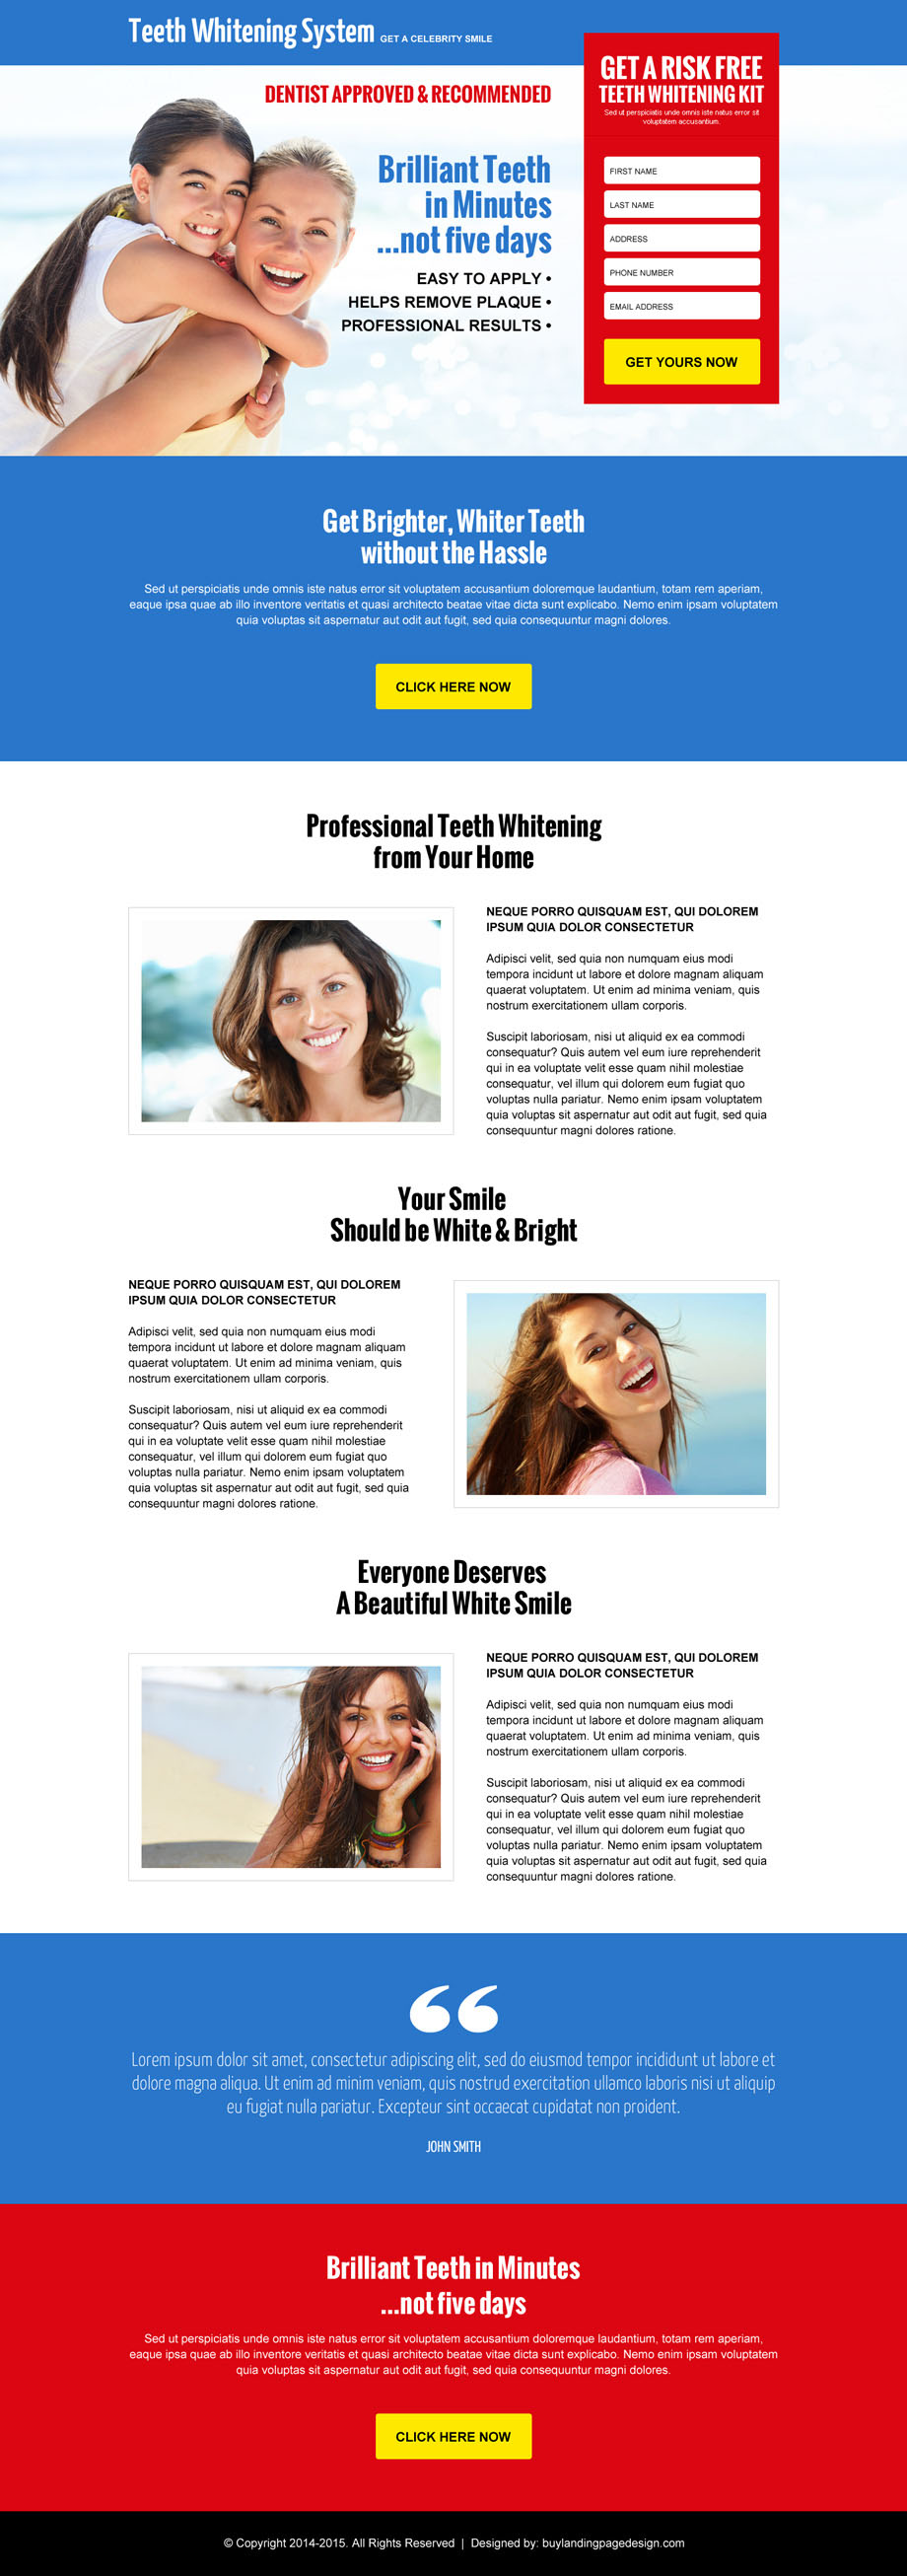 risk-free-teeth-whitening-kit-selling-lead-capture-converting-landing-page-design-template-016